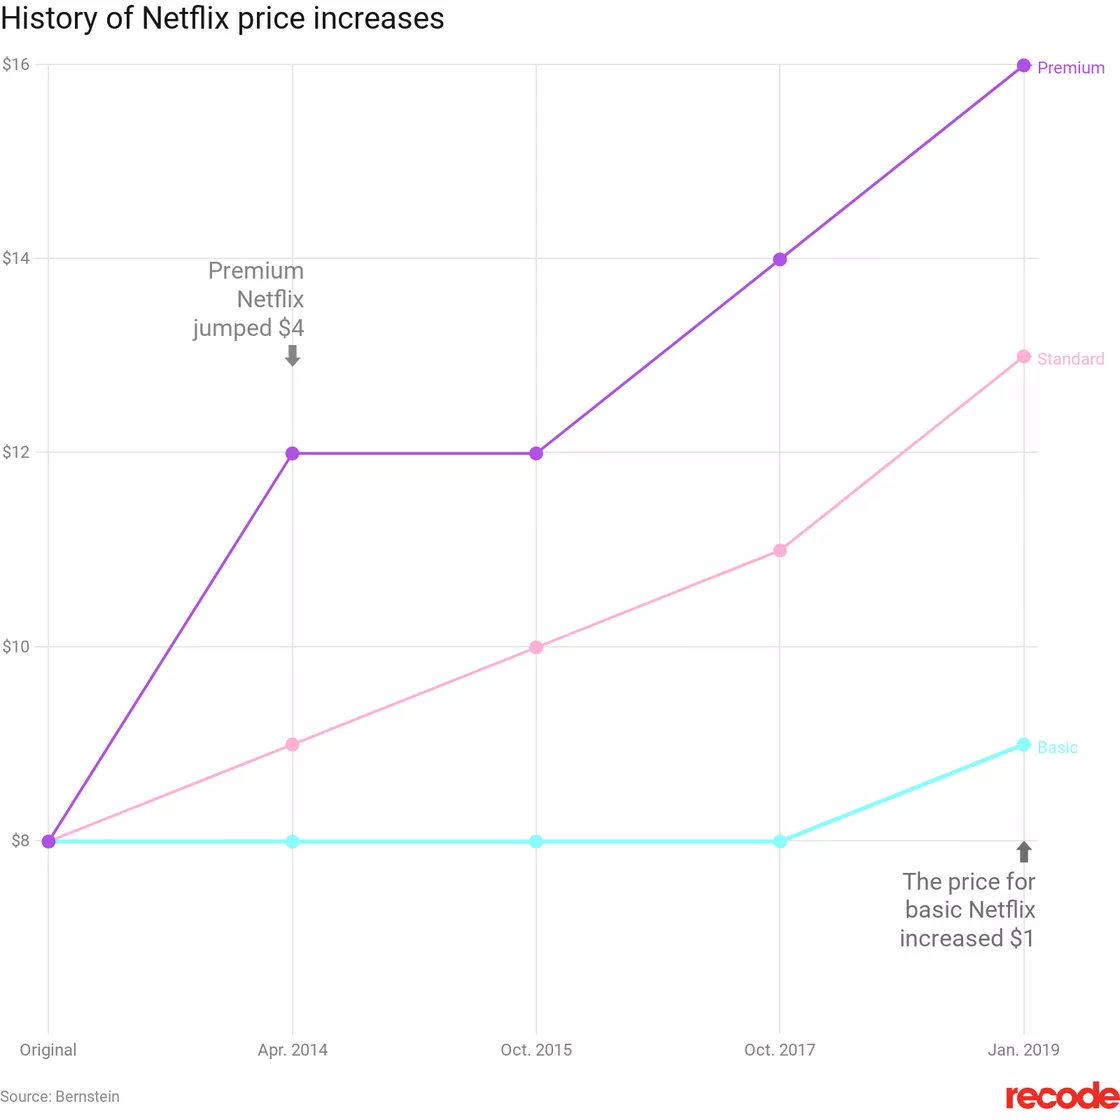 netflix history of price increases.